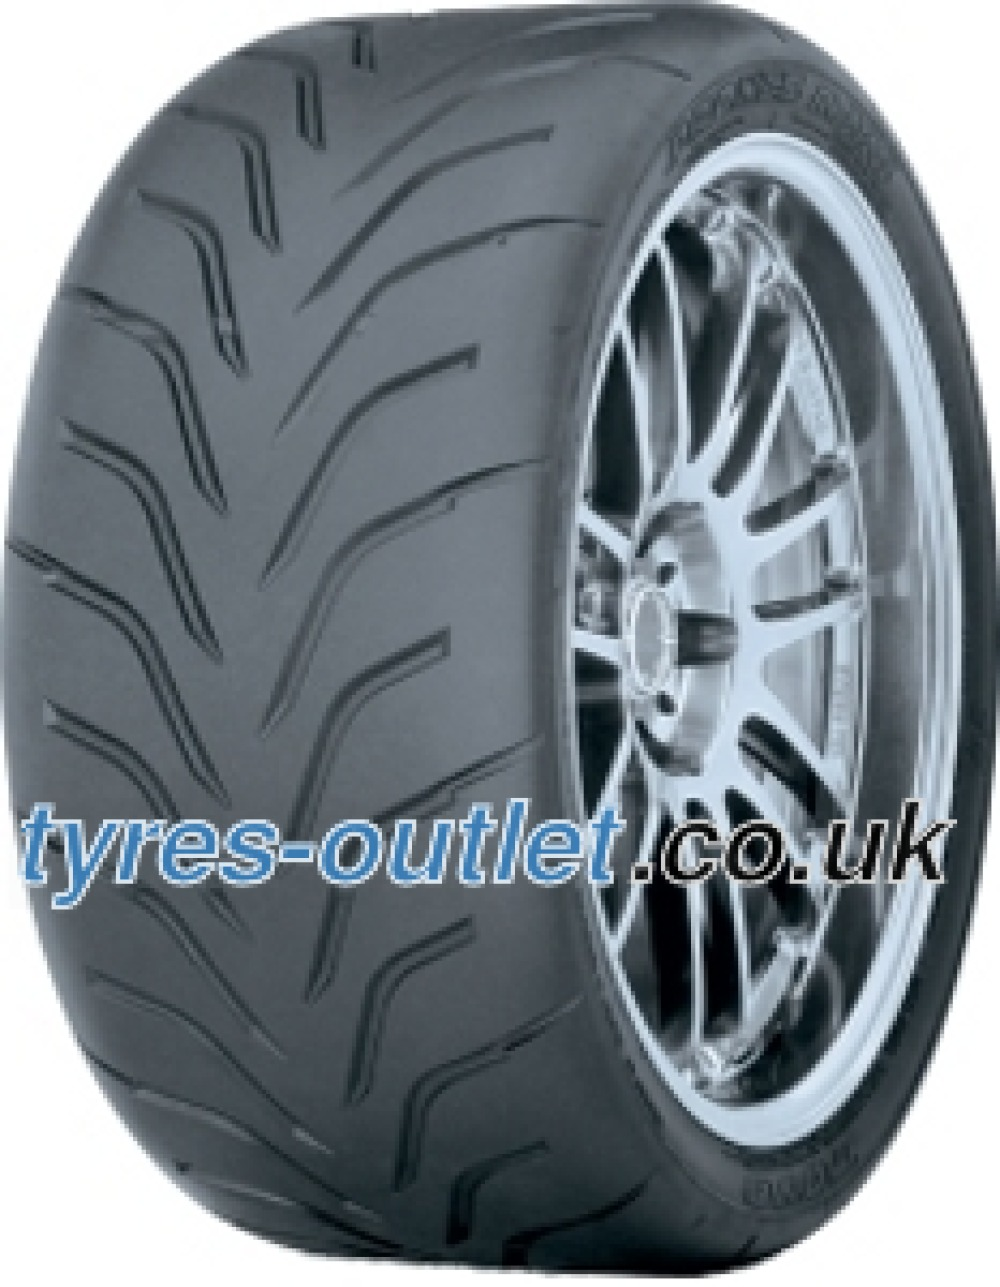 Toyo Proxes R888 ( 225/50 R14 89V with rim protection ridge (FSL) )